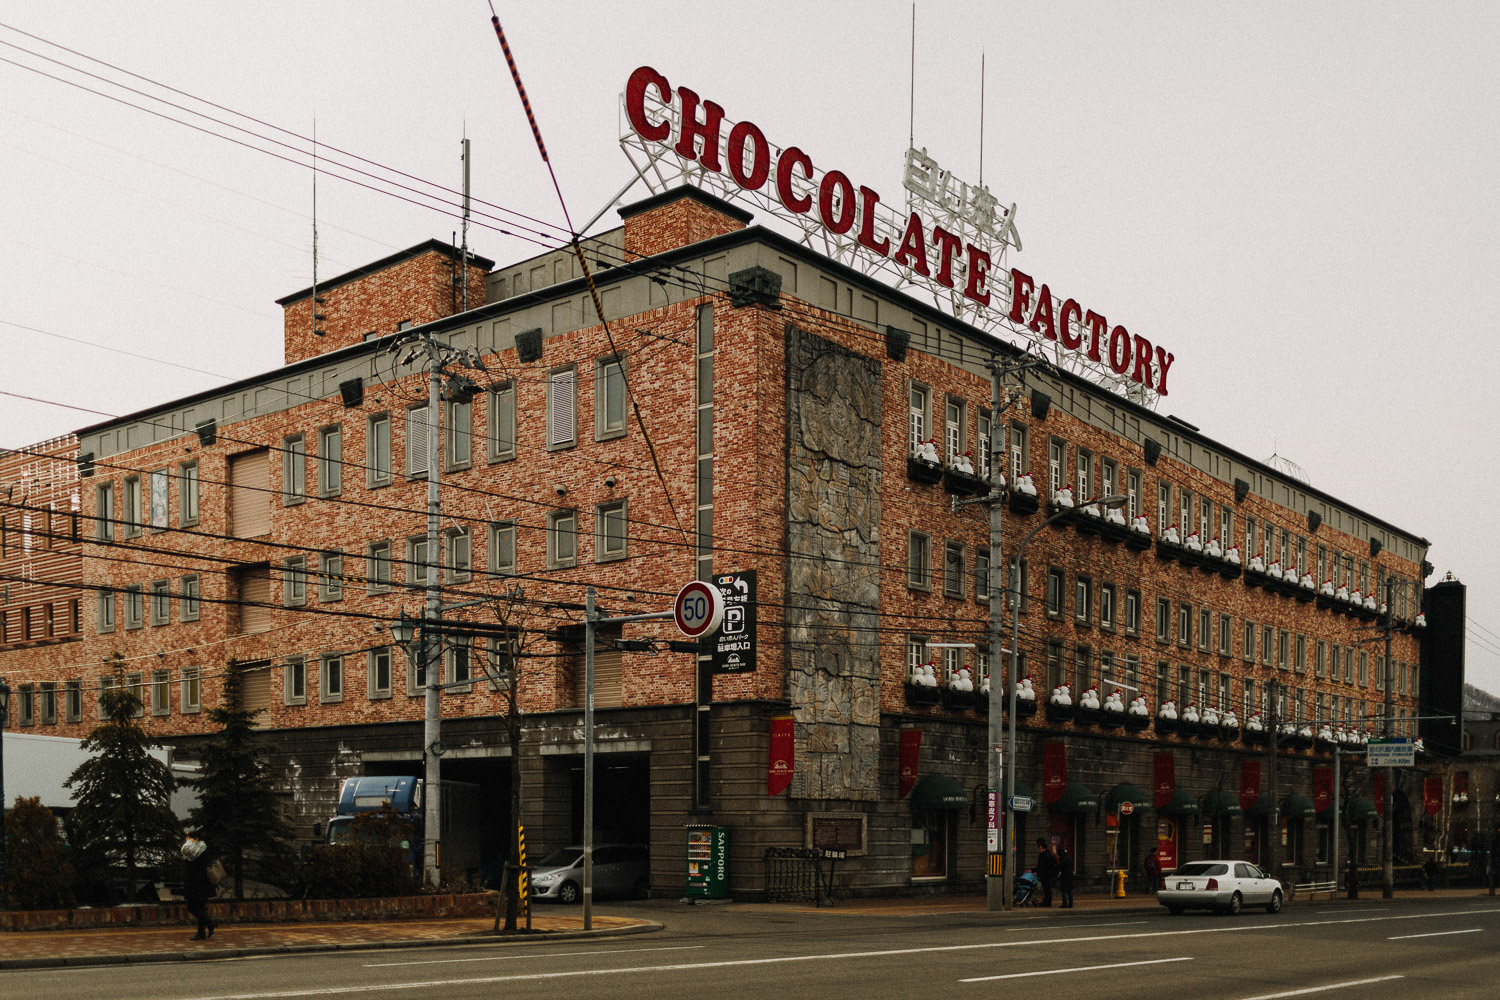 Image of Chocolate Factory building